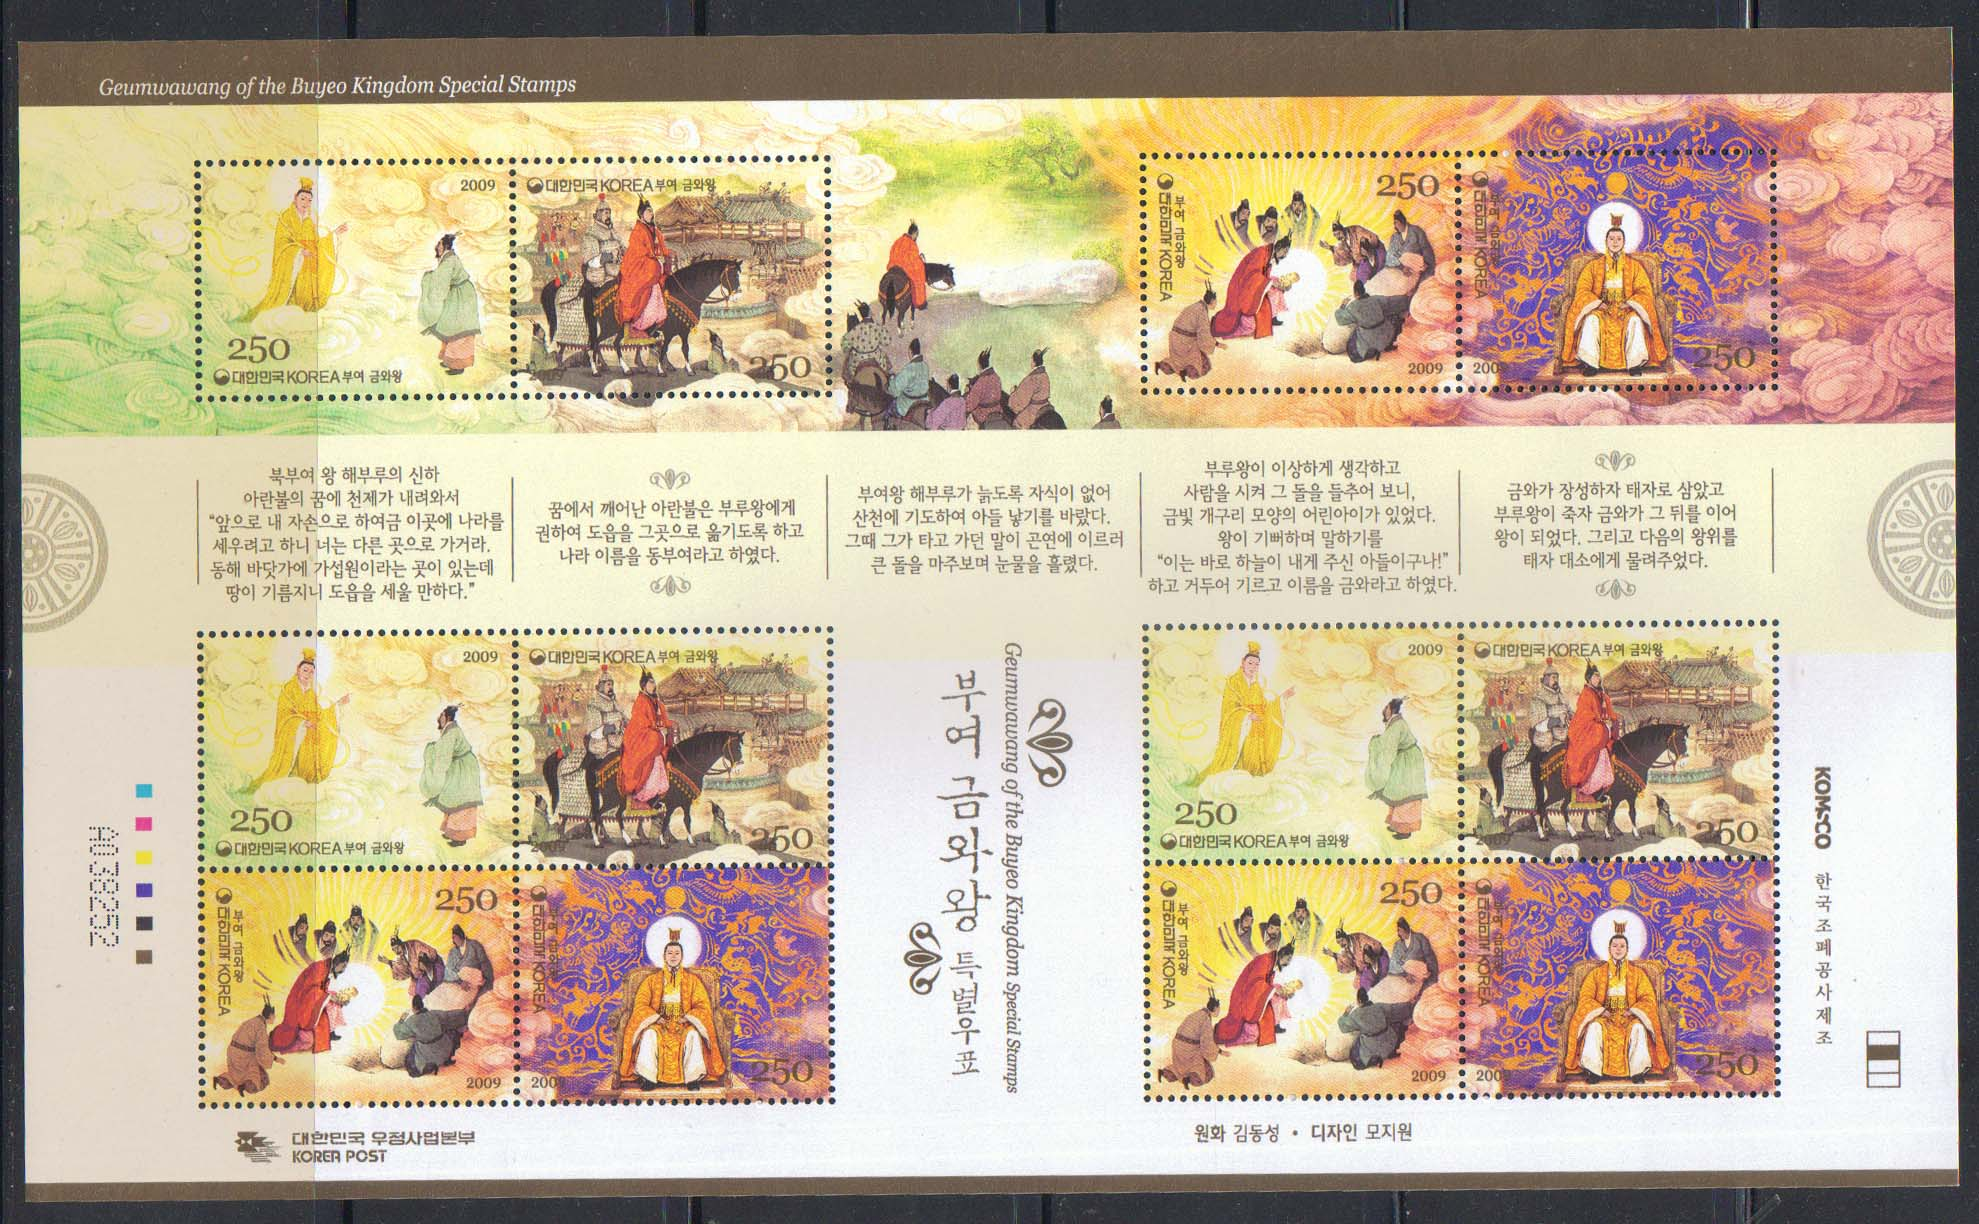 KR0191 South Korea 2009 Fuyu Kingdom story version stamp 1MS new 0505 ca0633 canada 2014 mammal stamp all sheets 1ms new 0626